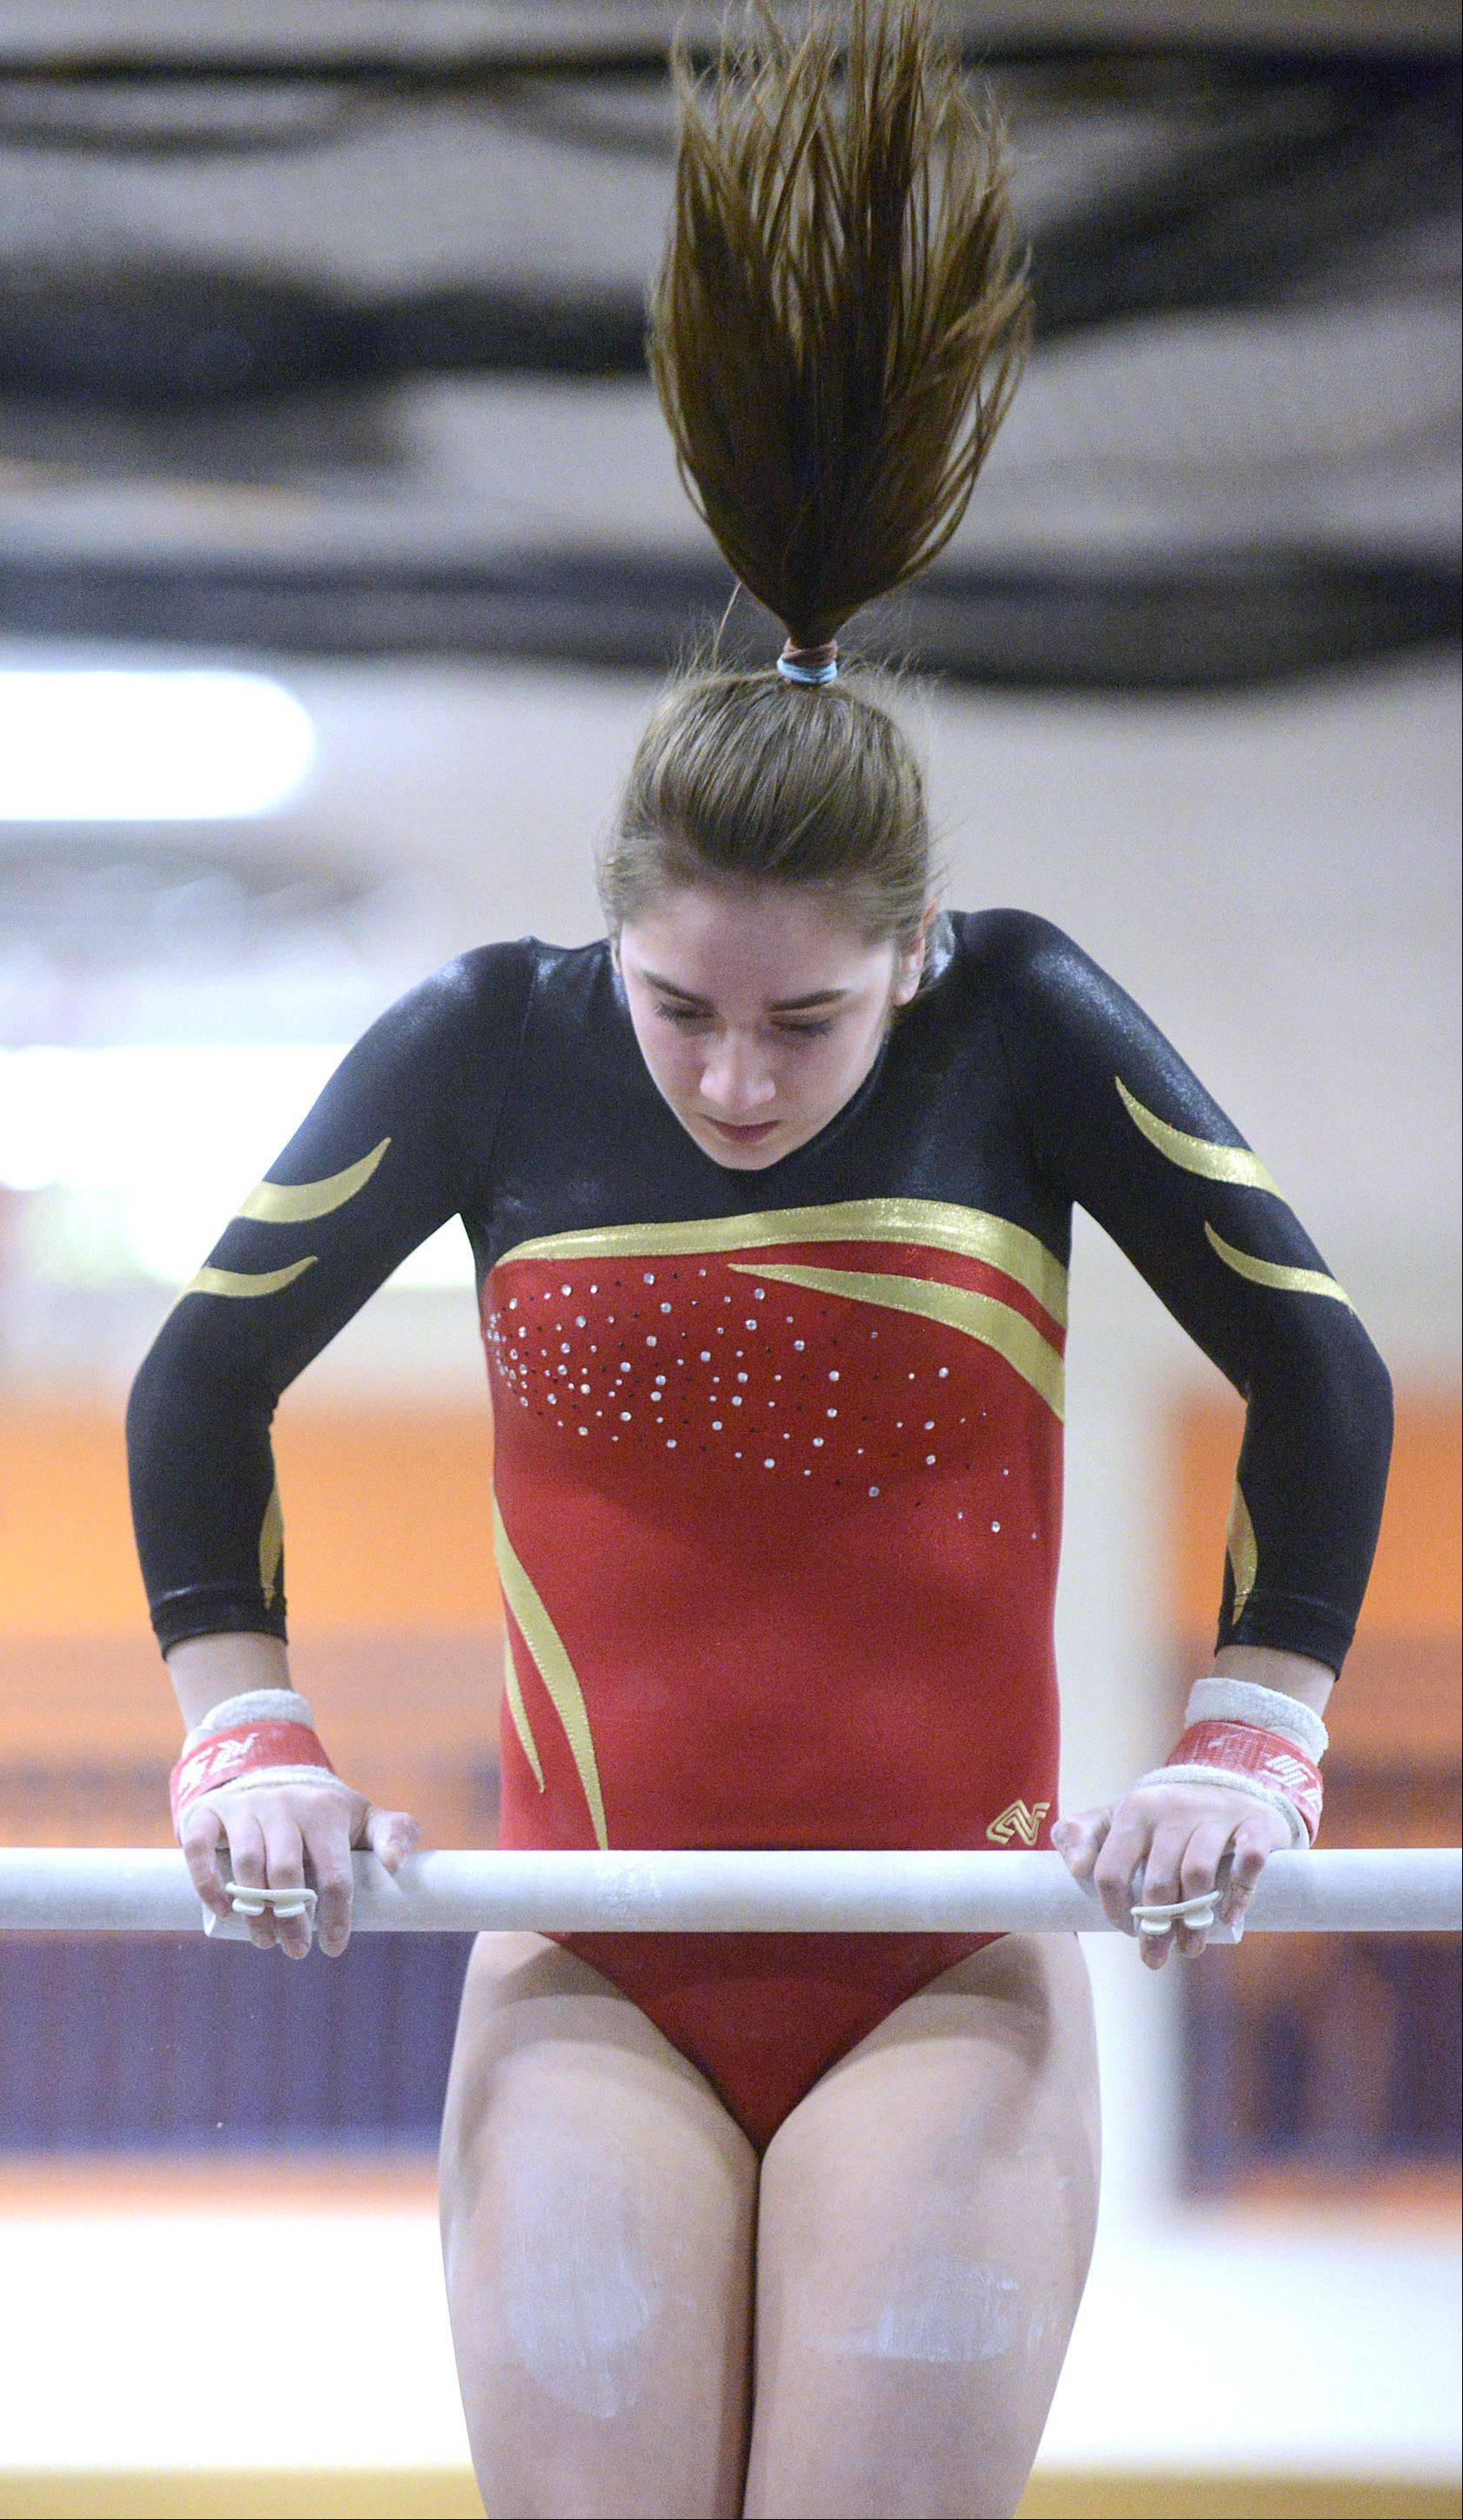 Batavia's Megan McGee competes on the uneven bars during the gymnastics meet vs. Geneva on Wednesday, January 8.